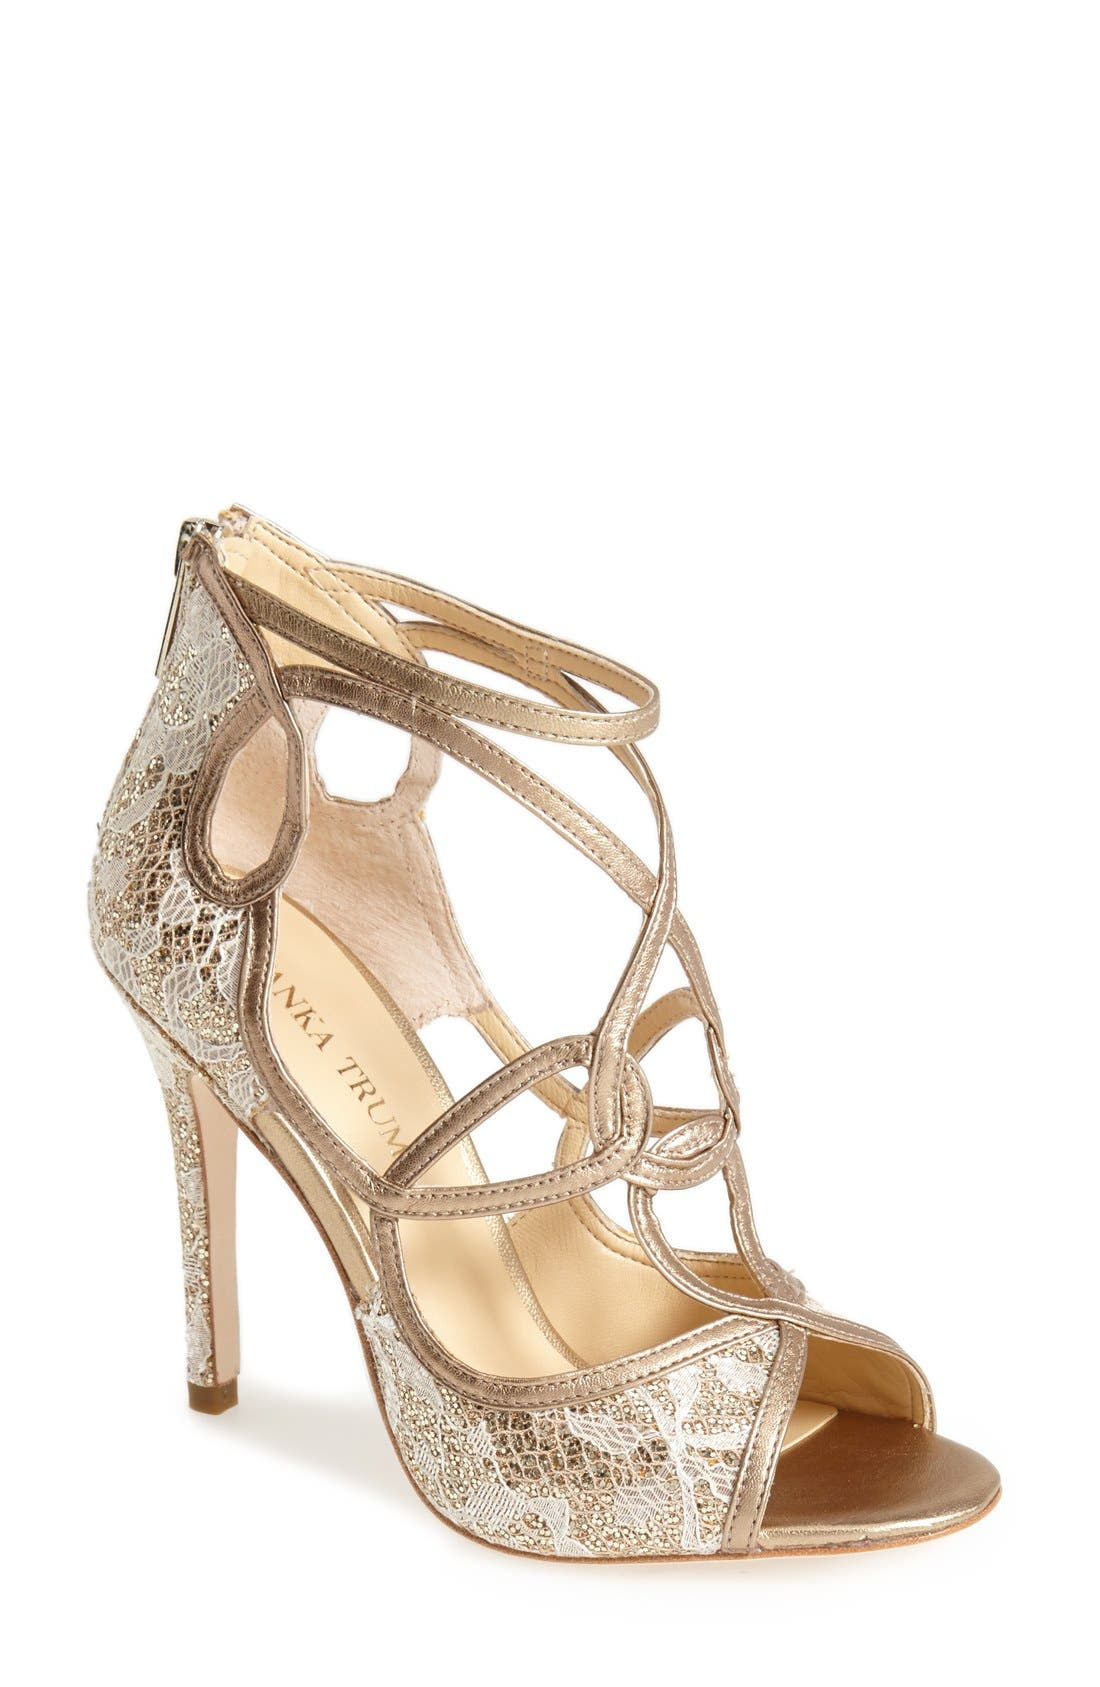 Alternate Image 1 Selected - Ivanka Trump 'Hatla' Caged Sandal